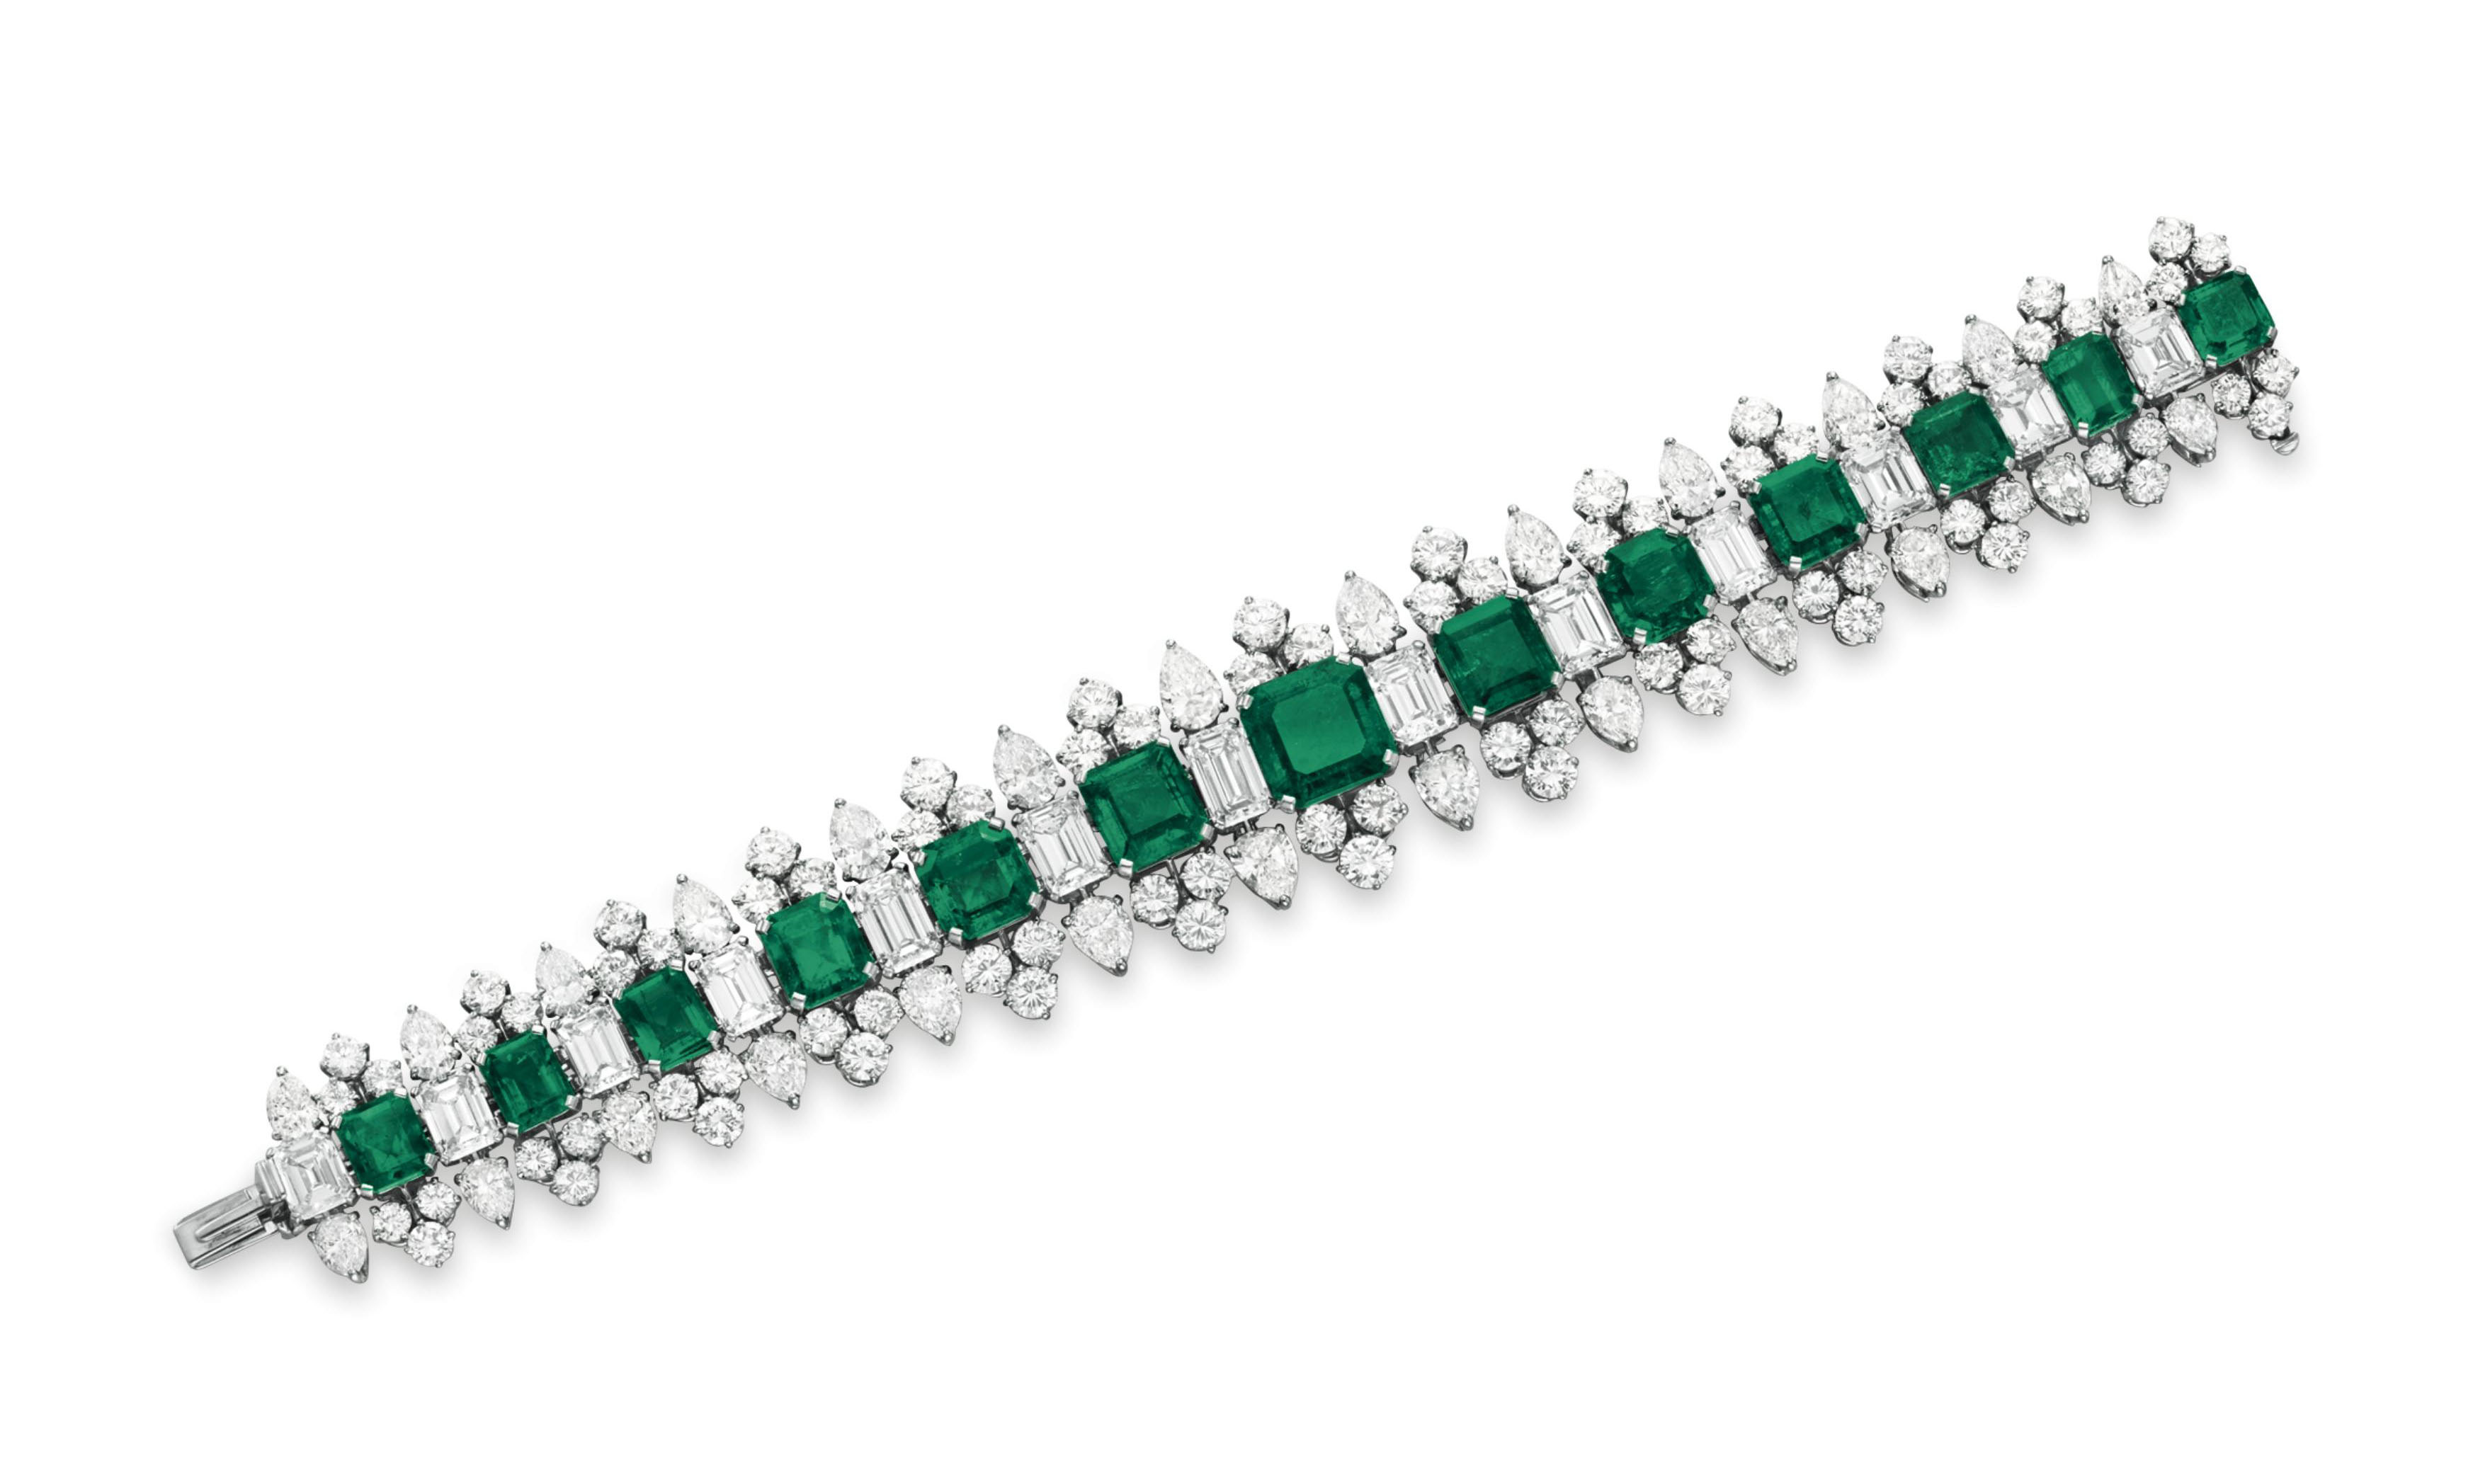 AN EMERALD AND DIAMOND BRACELET, BY BVLGARI